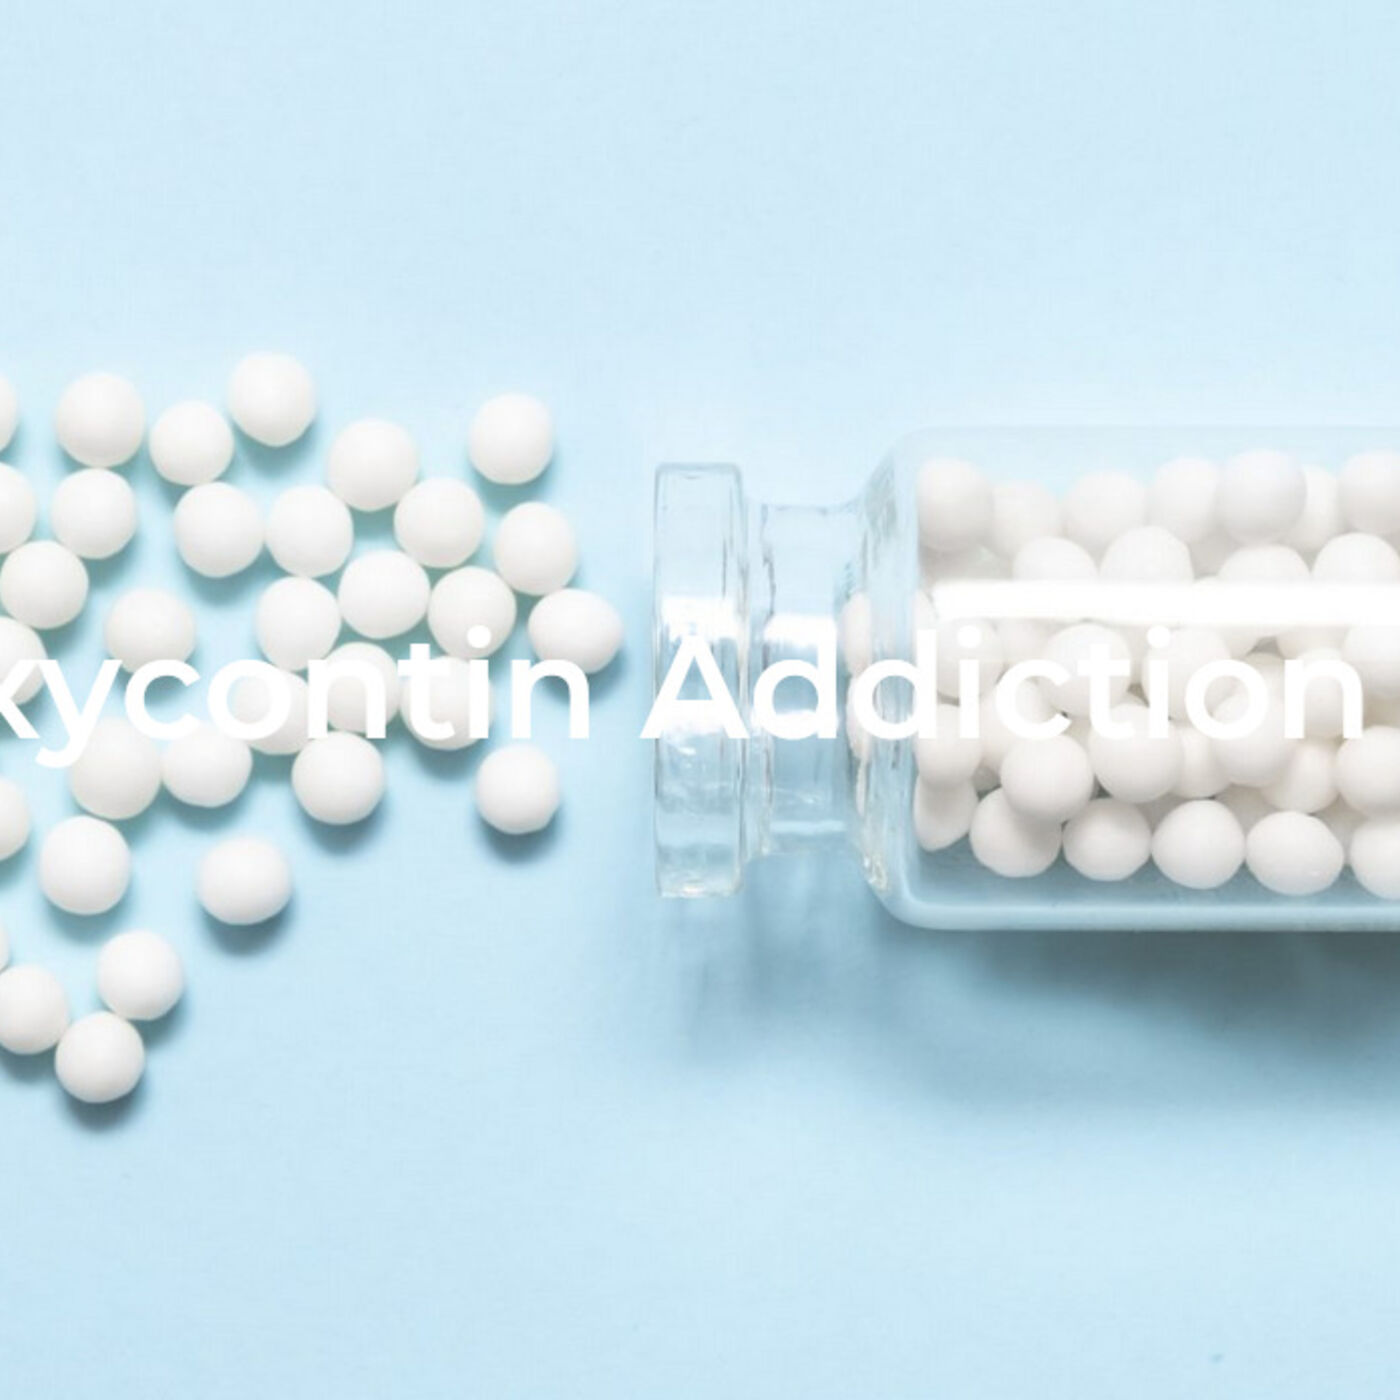 OxyContin Addiction (Podcast) * All You Need to Know About Oxy Addiction, Detox and OxyContin Rehab